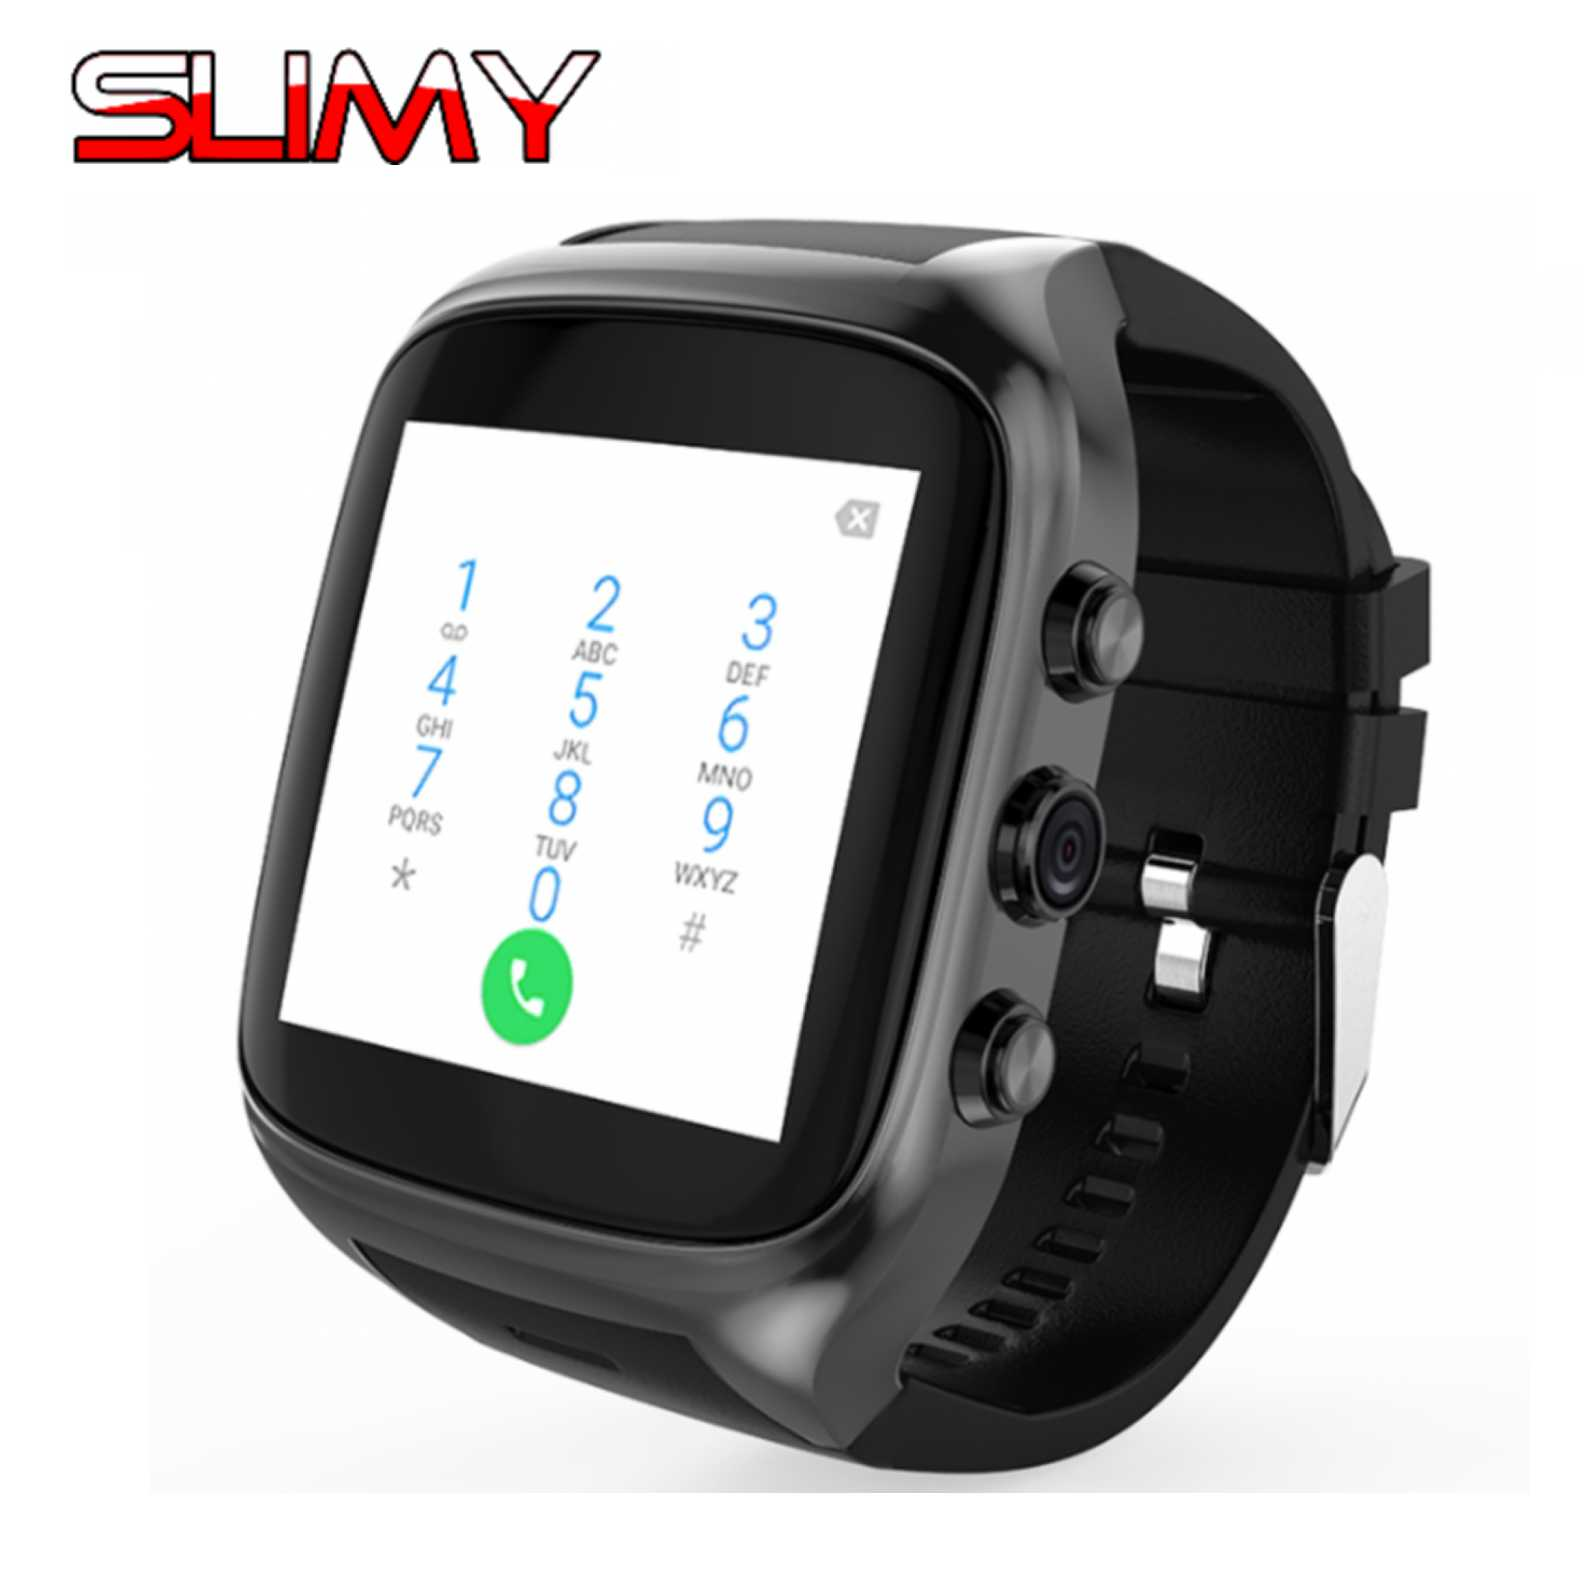 Slimy Android 5.1 OS Smart Watch X02S Electronics Gift 1.54 Inch MTK6580 Smartwatch Phone Support 3G Wifi Nano SIM WCDMA GPS vaglory q1 wifi gps 3g smart watch 512mb 4gb android 5 1 os mtk6580 bluetooth smartwatch support nano sim card app download